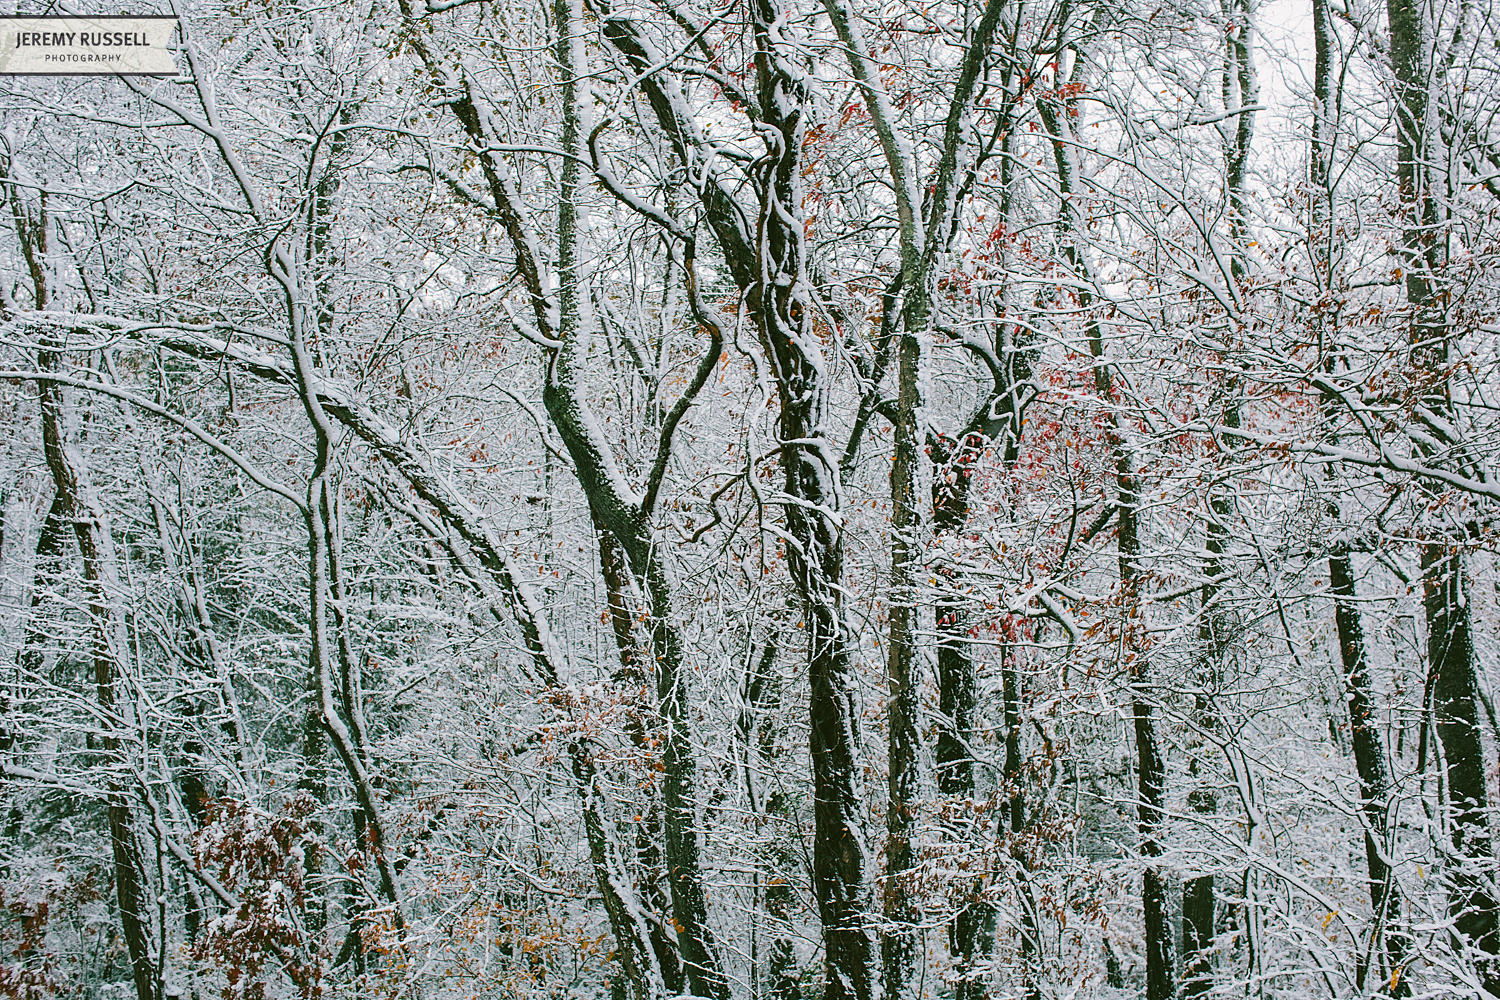 Jeremy-Russell-14-Asheville-Fall-Snow-1.jpg